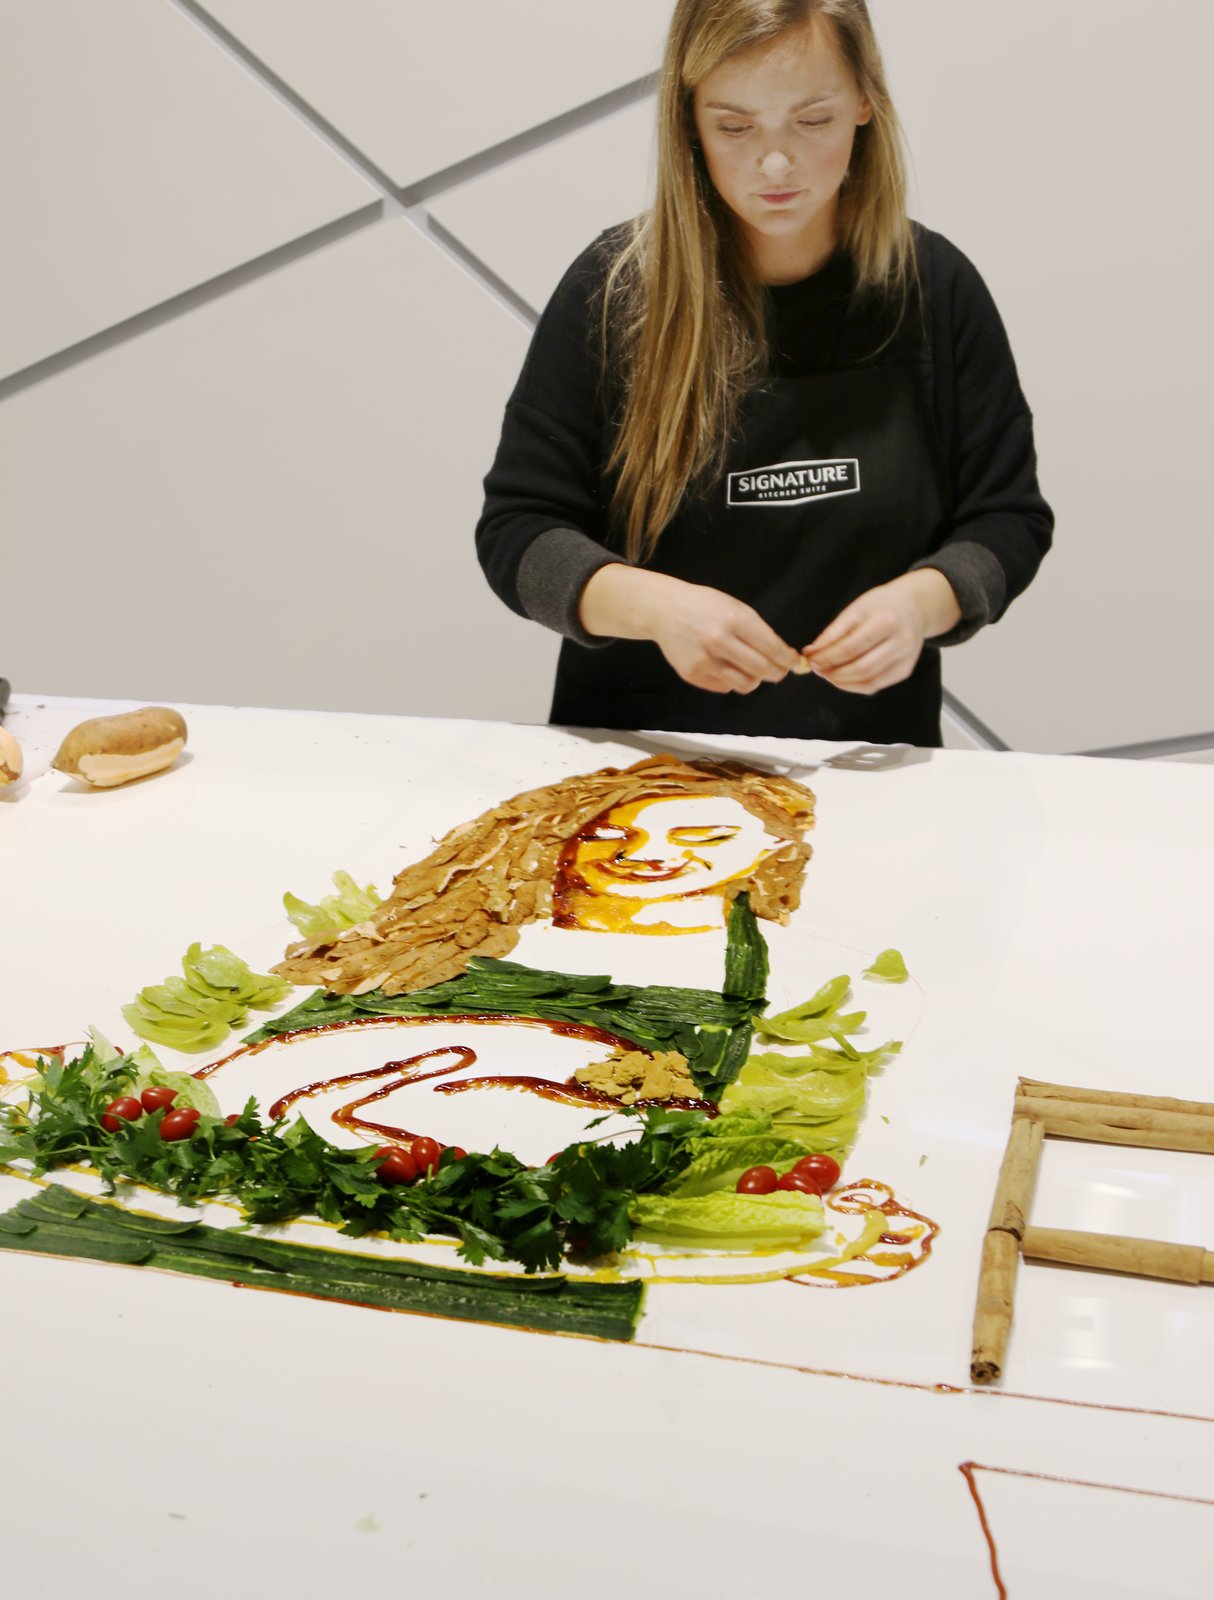 Artist Jessie Bearden's creations transformed this countertop into an evolving edible art display.  Photo 7 of 8 in Signature Kitchen Suite's Modern Pavilion Shines at KBIS